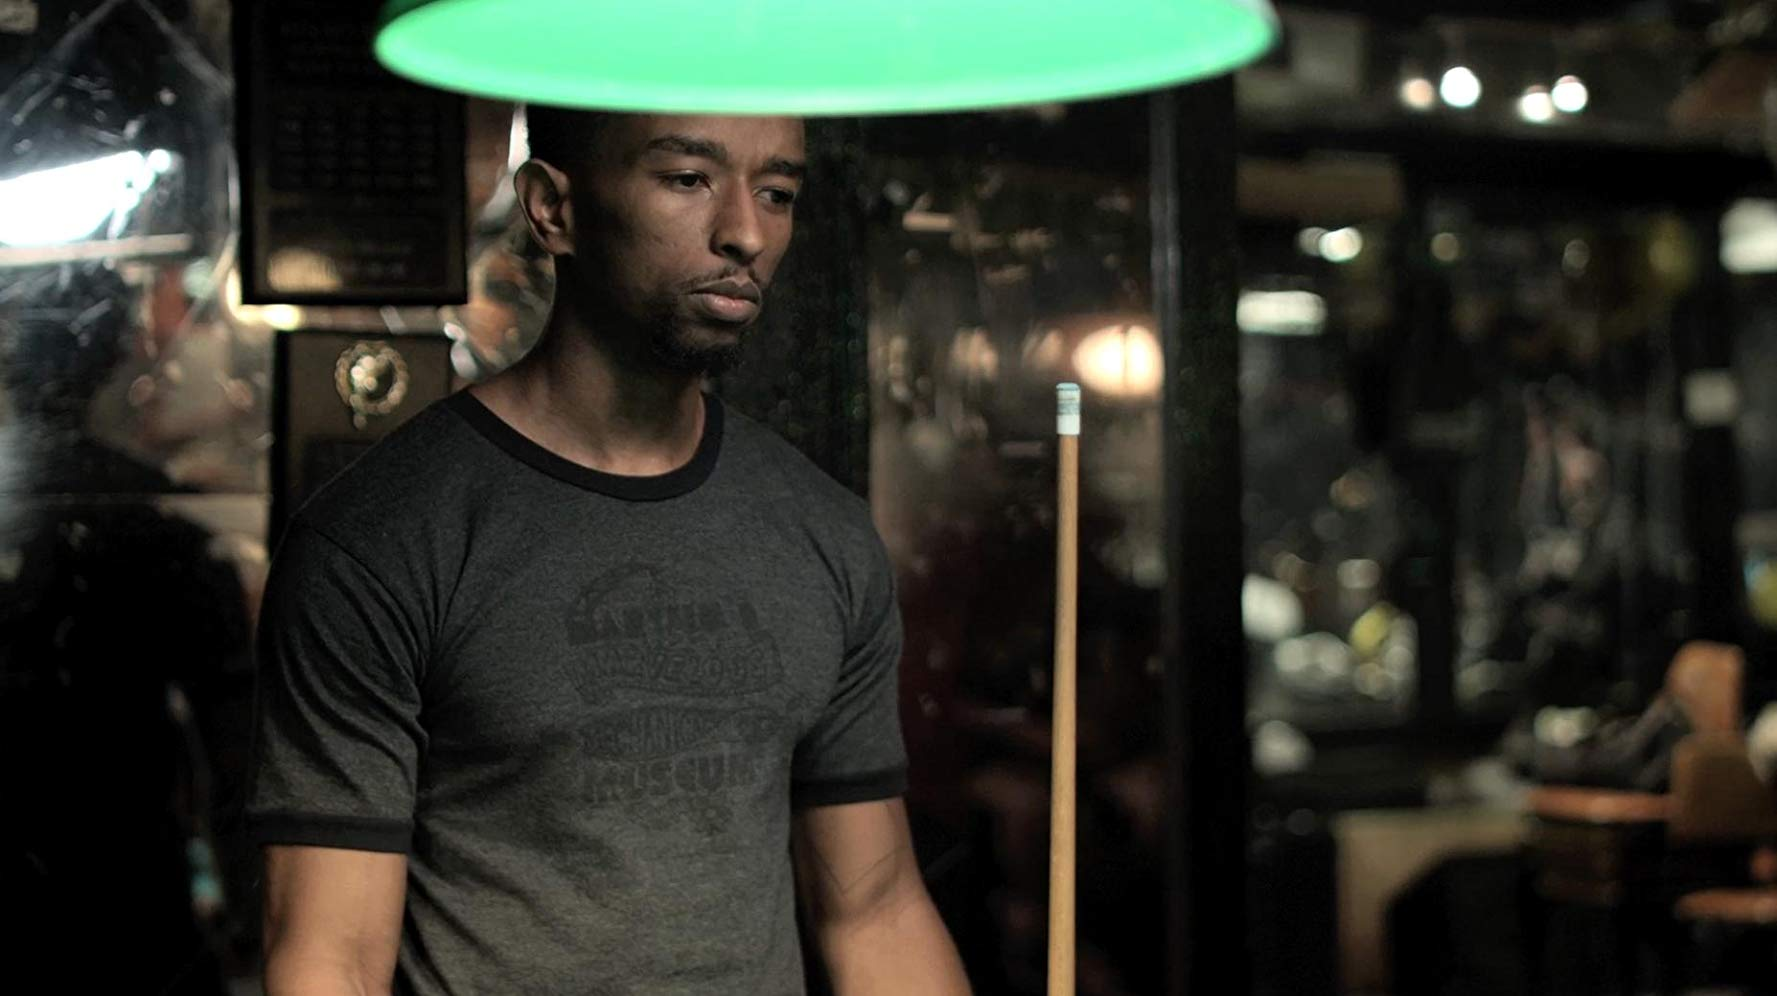 Kevin L. Walker in Pope Movie 'Pool Hall Scene'